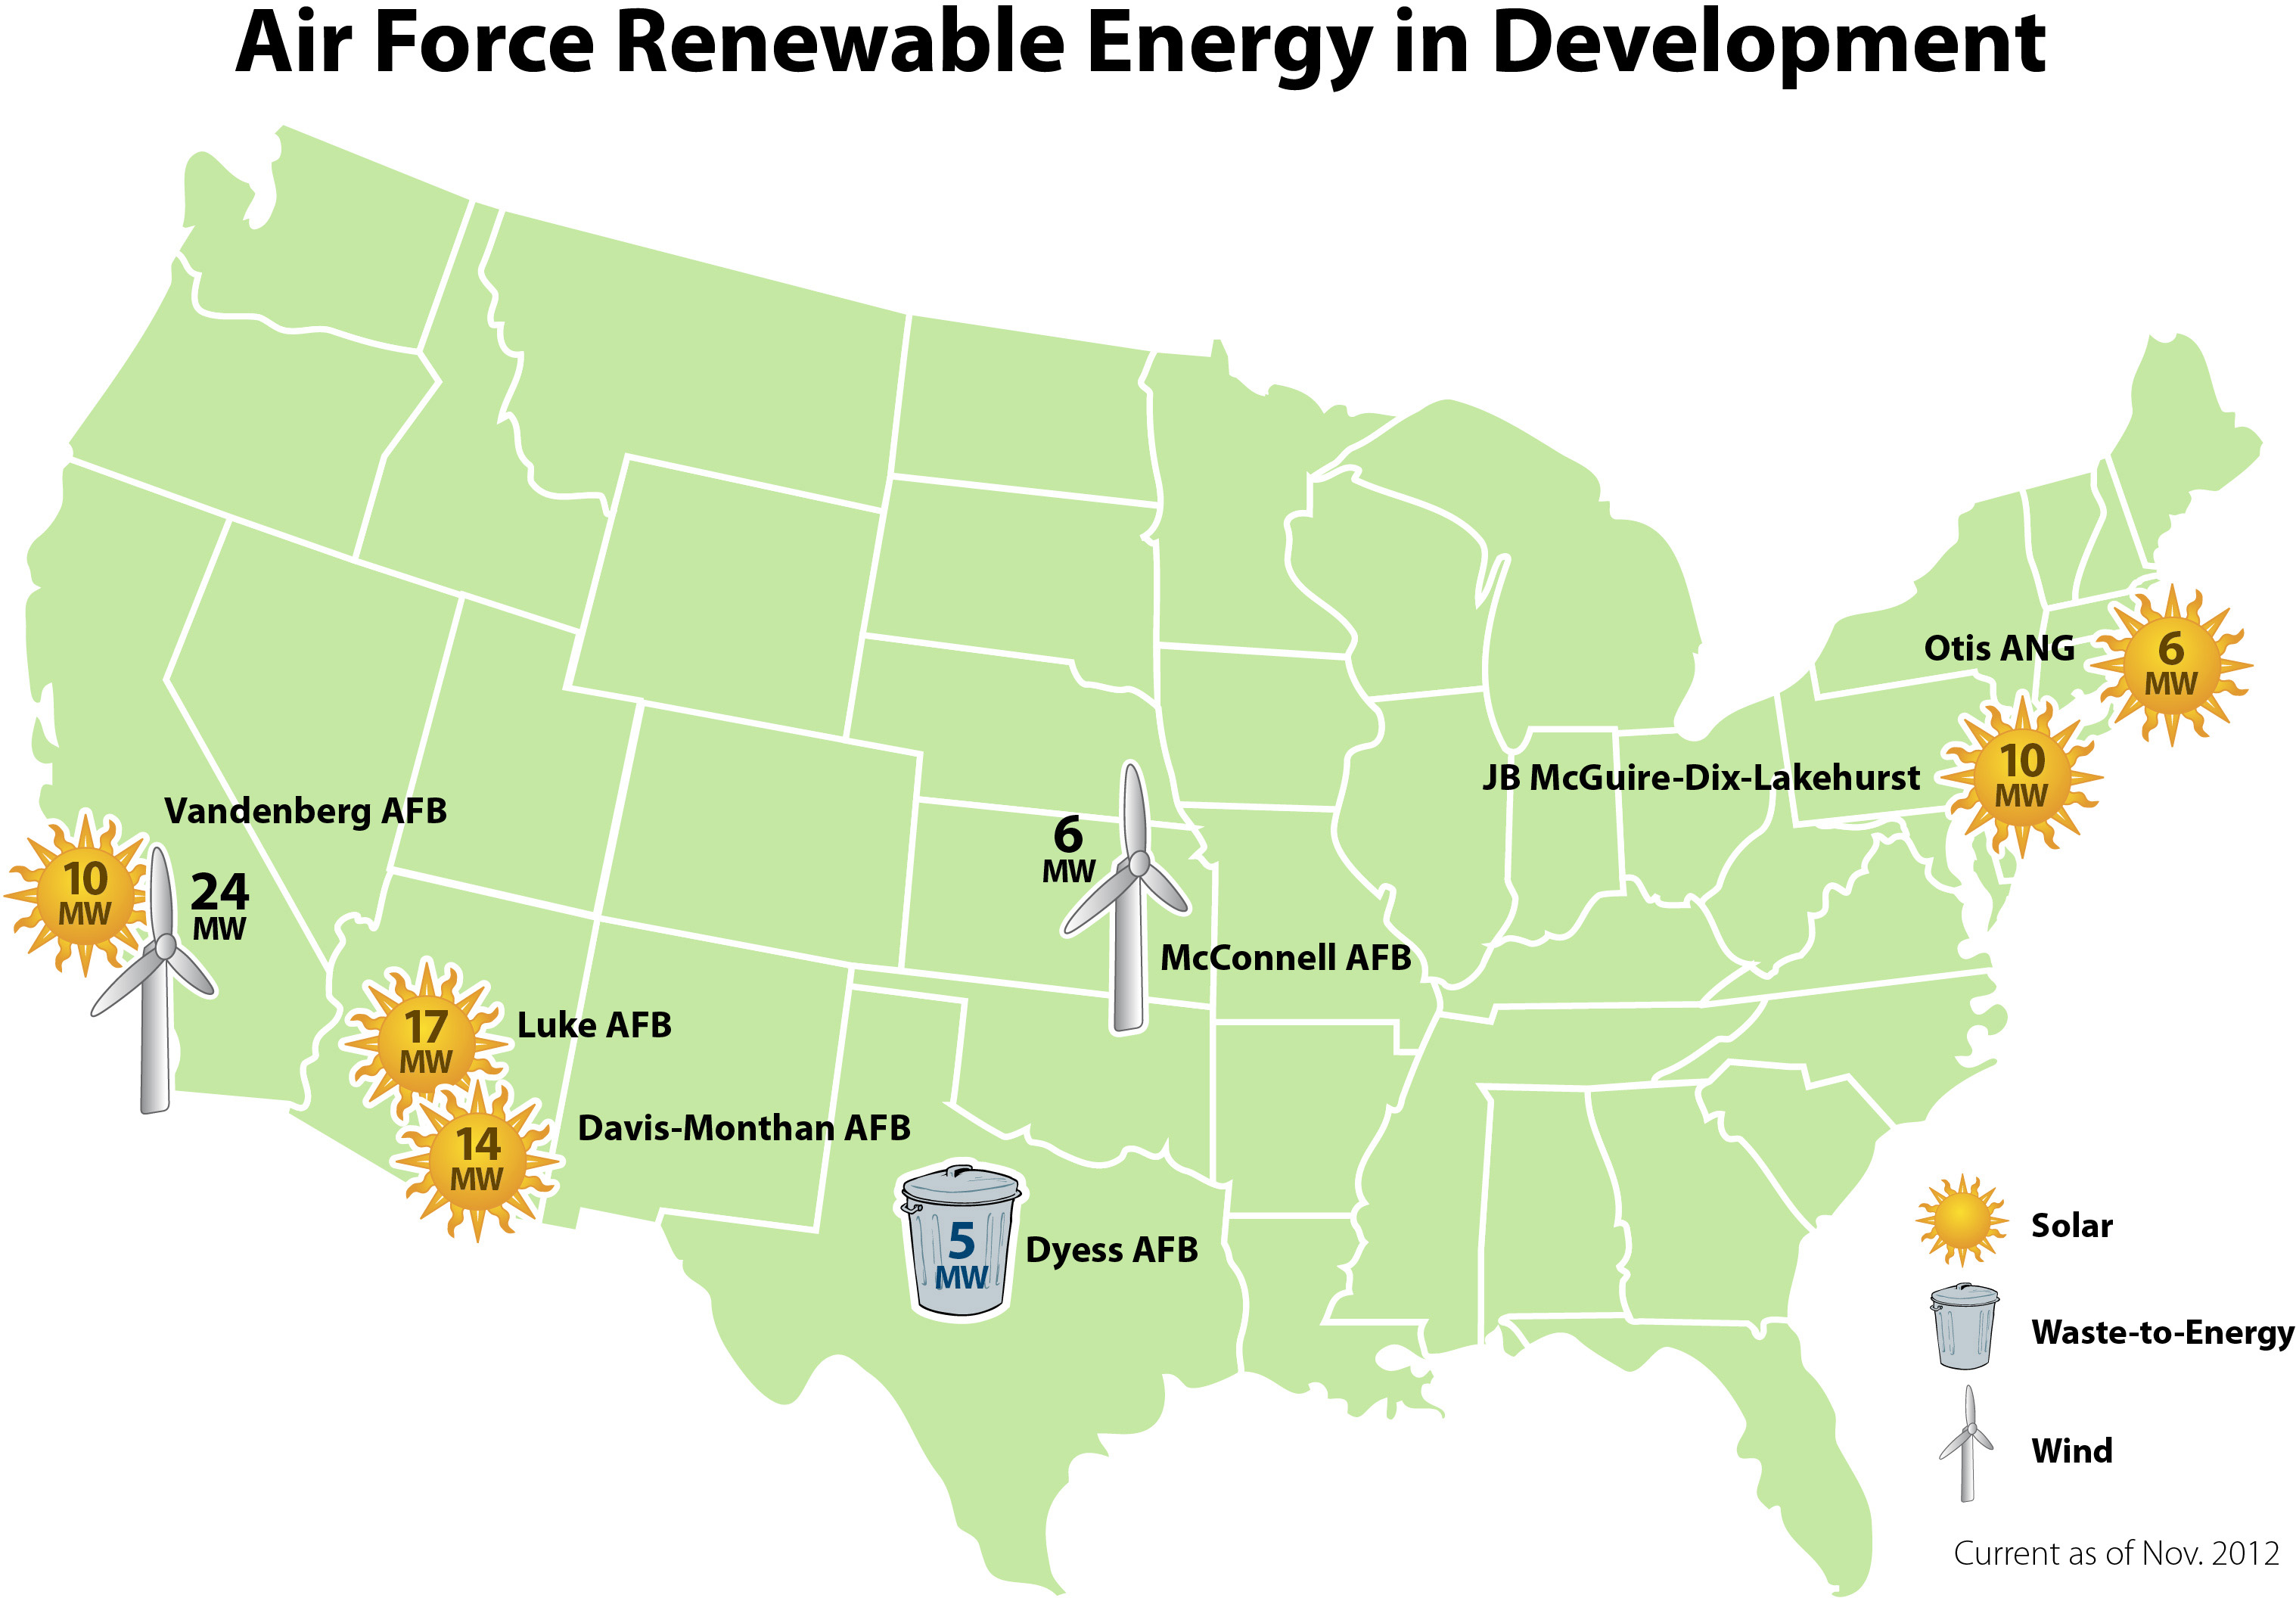 Upcoming projects air force renewable energy projects in development map freerunsca Images